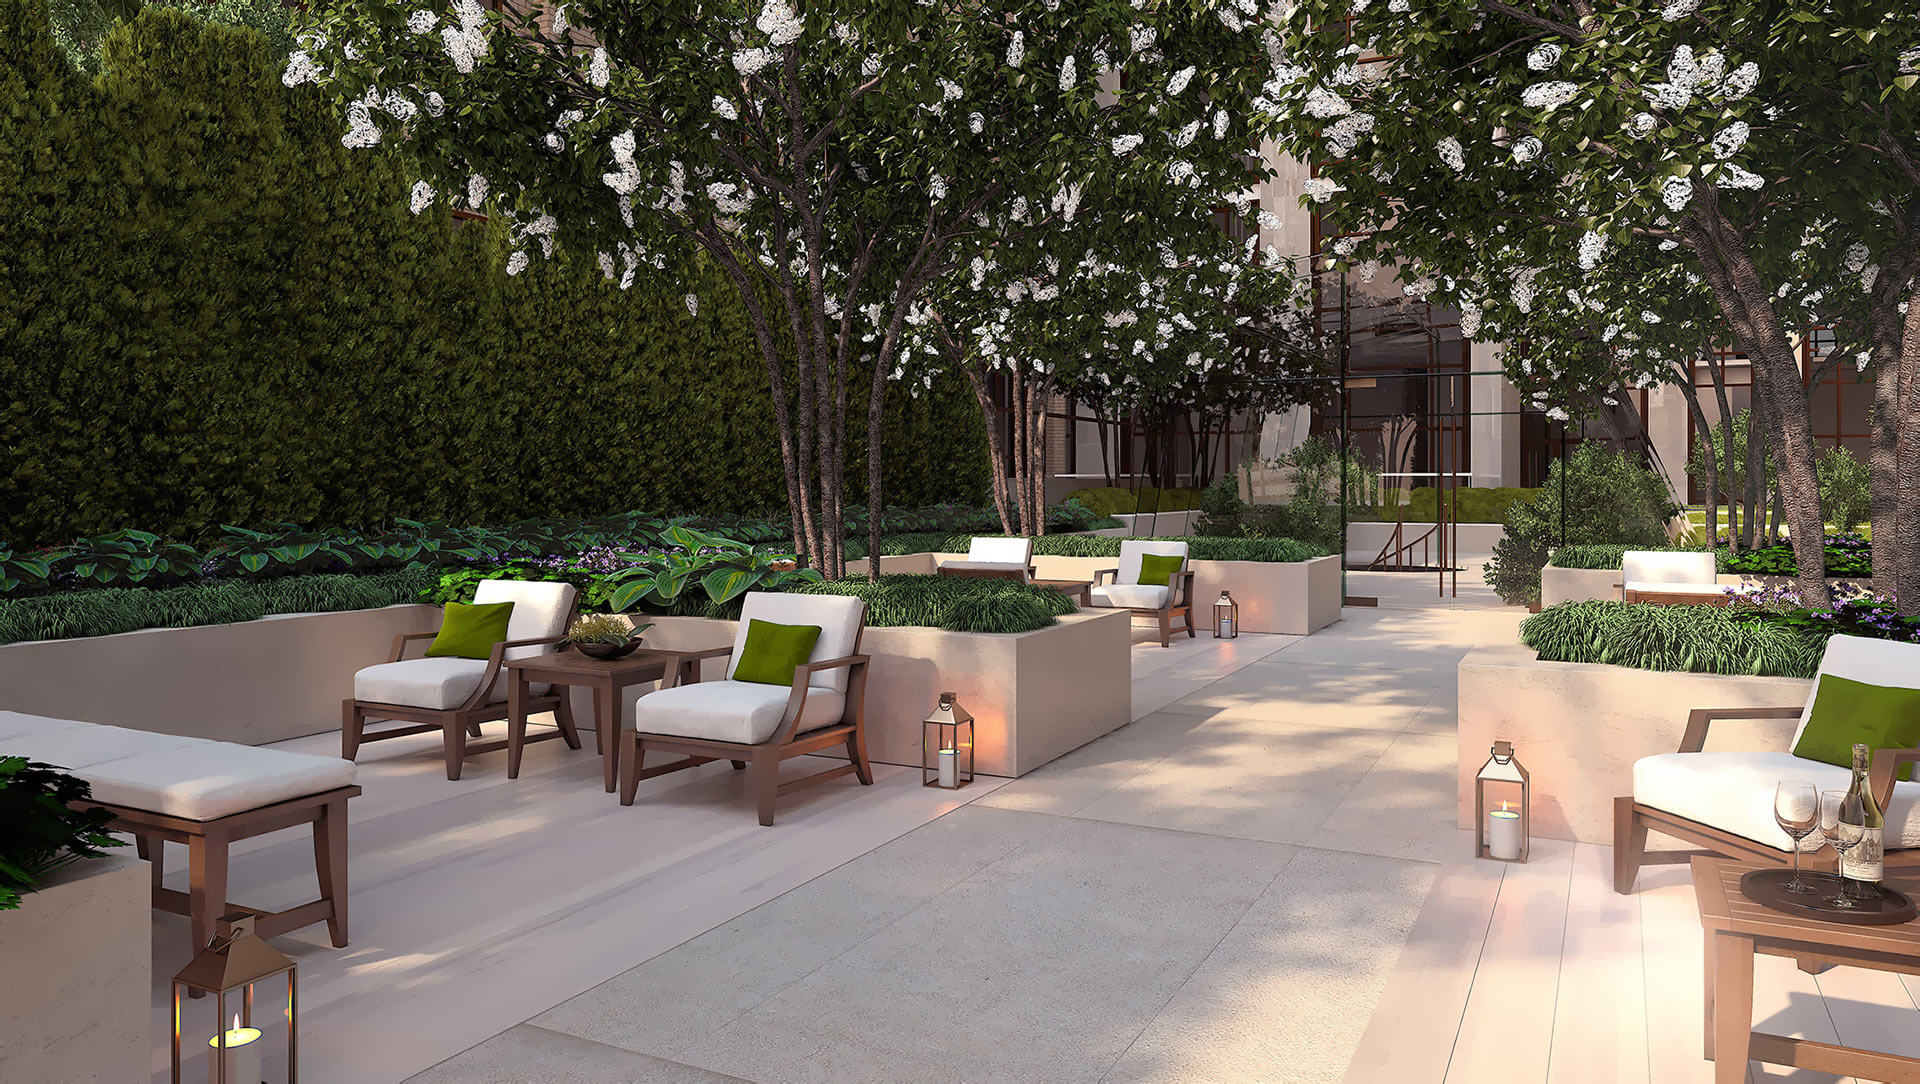 Gramercy square gramercy park manhattan scout for Gramercy park apartments for sale